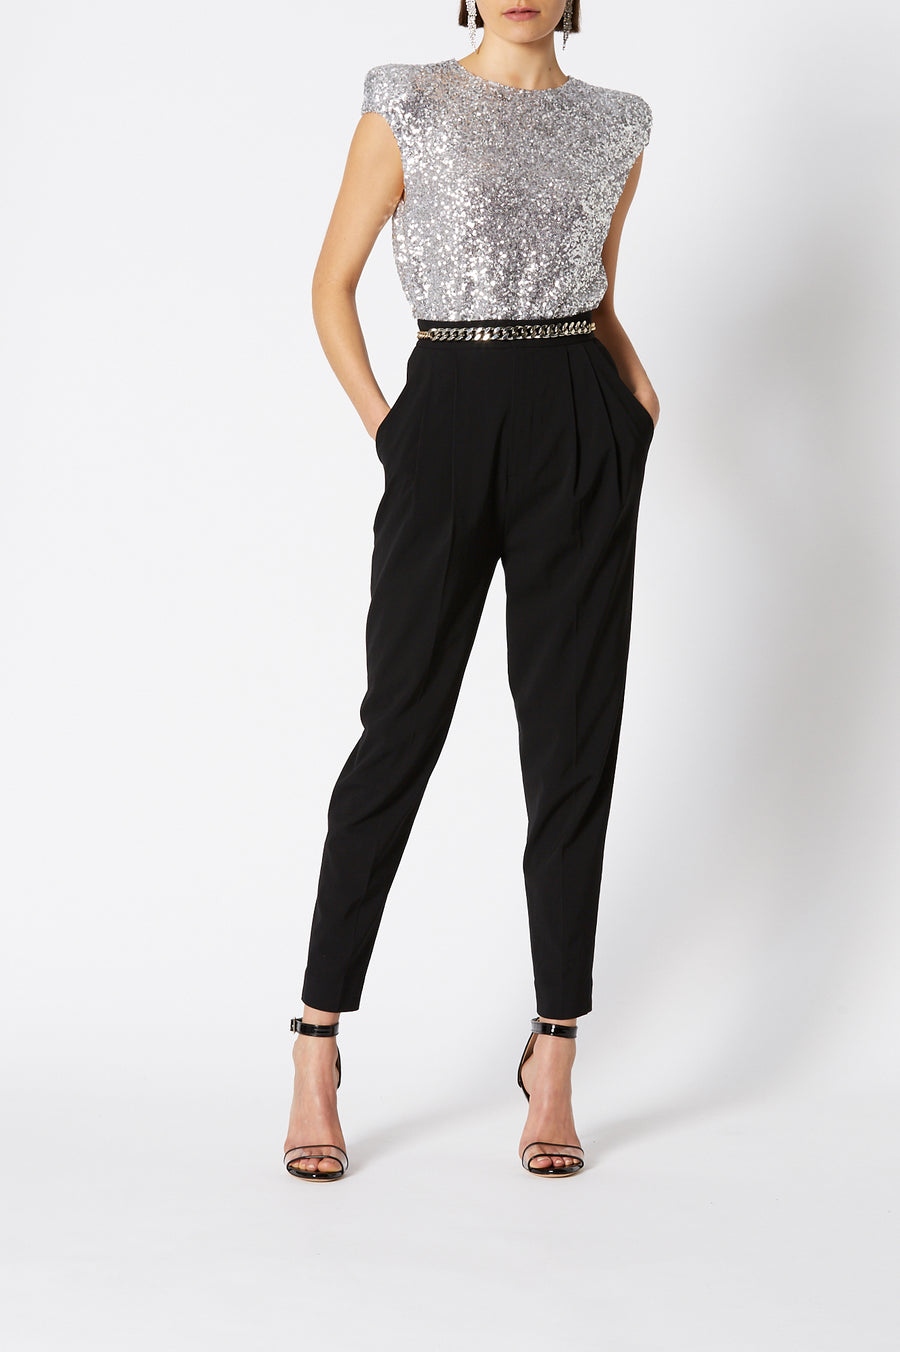 Sequin Top, broad tailored shoulder, cap sleeve, high neckline, keyhole button closure at back, color silver